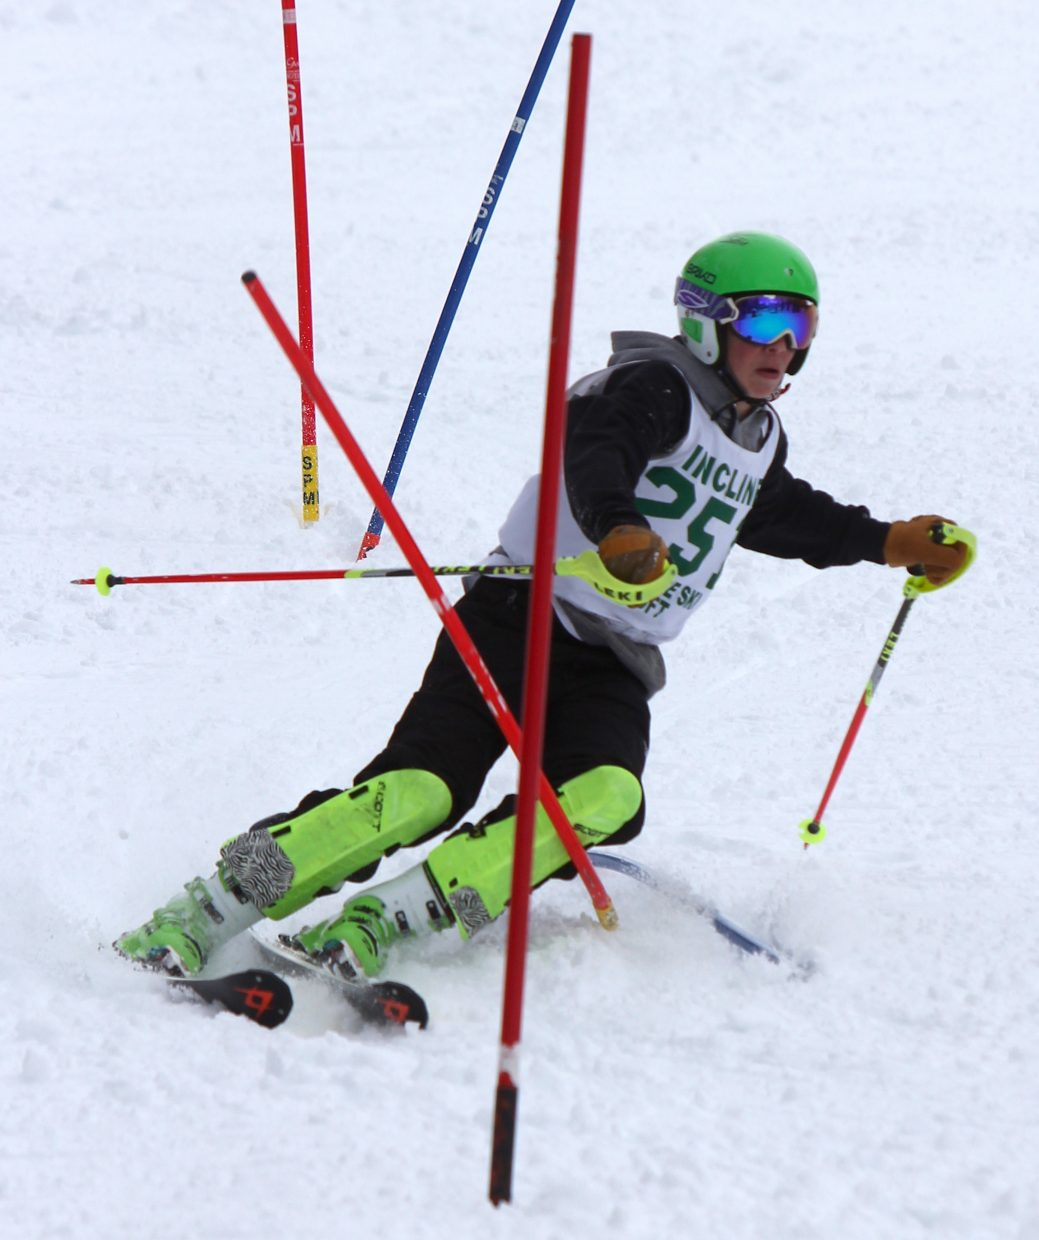 Incline's Otto Albrecht charges down the slalom course Monday on his way to ninth place.